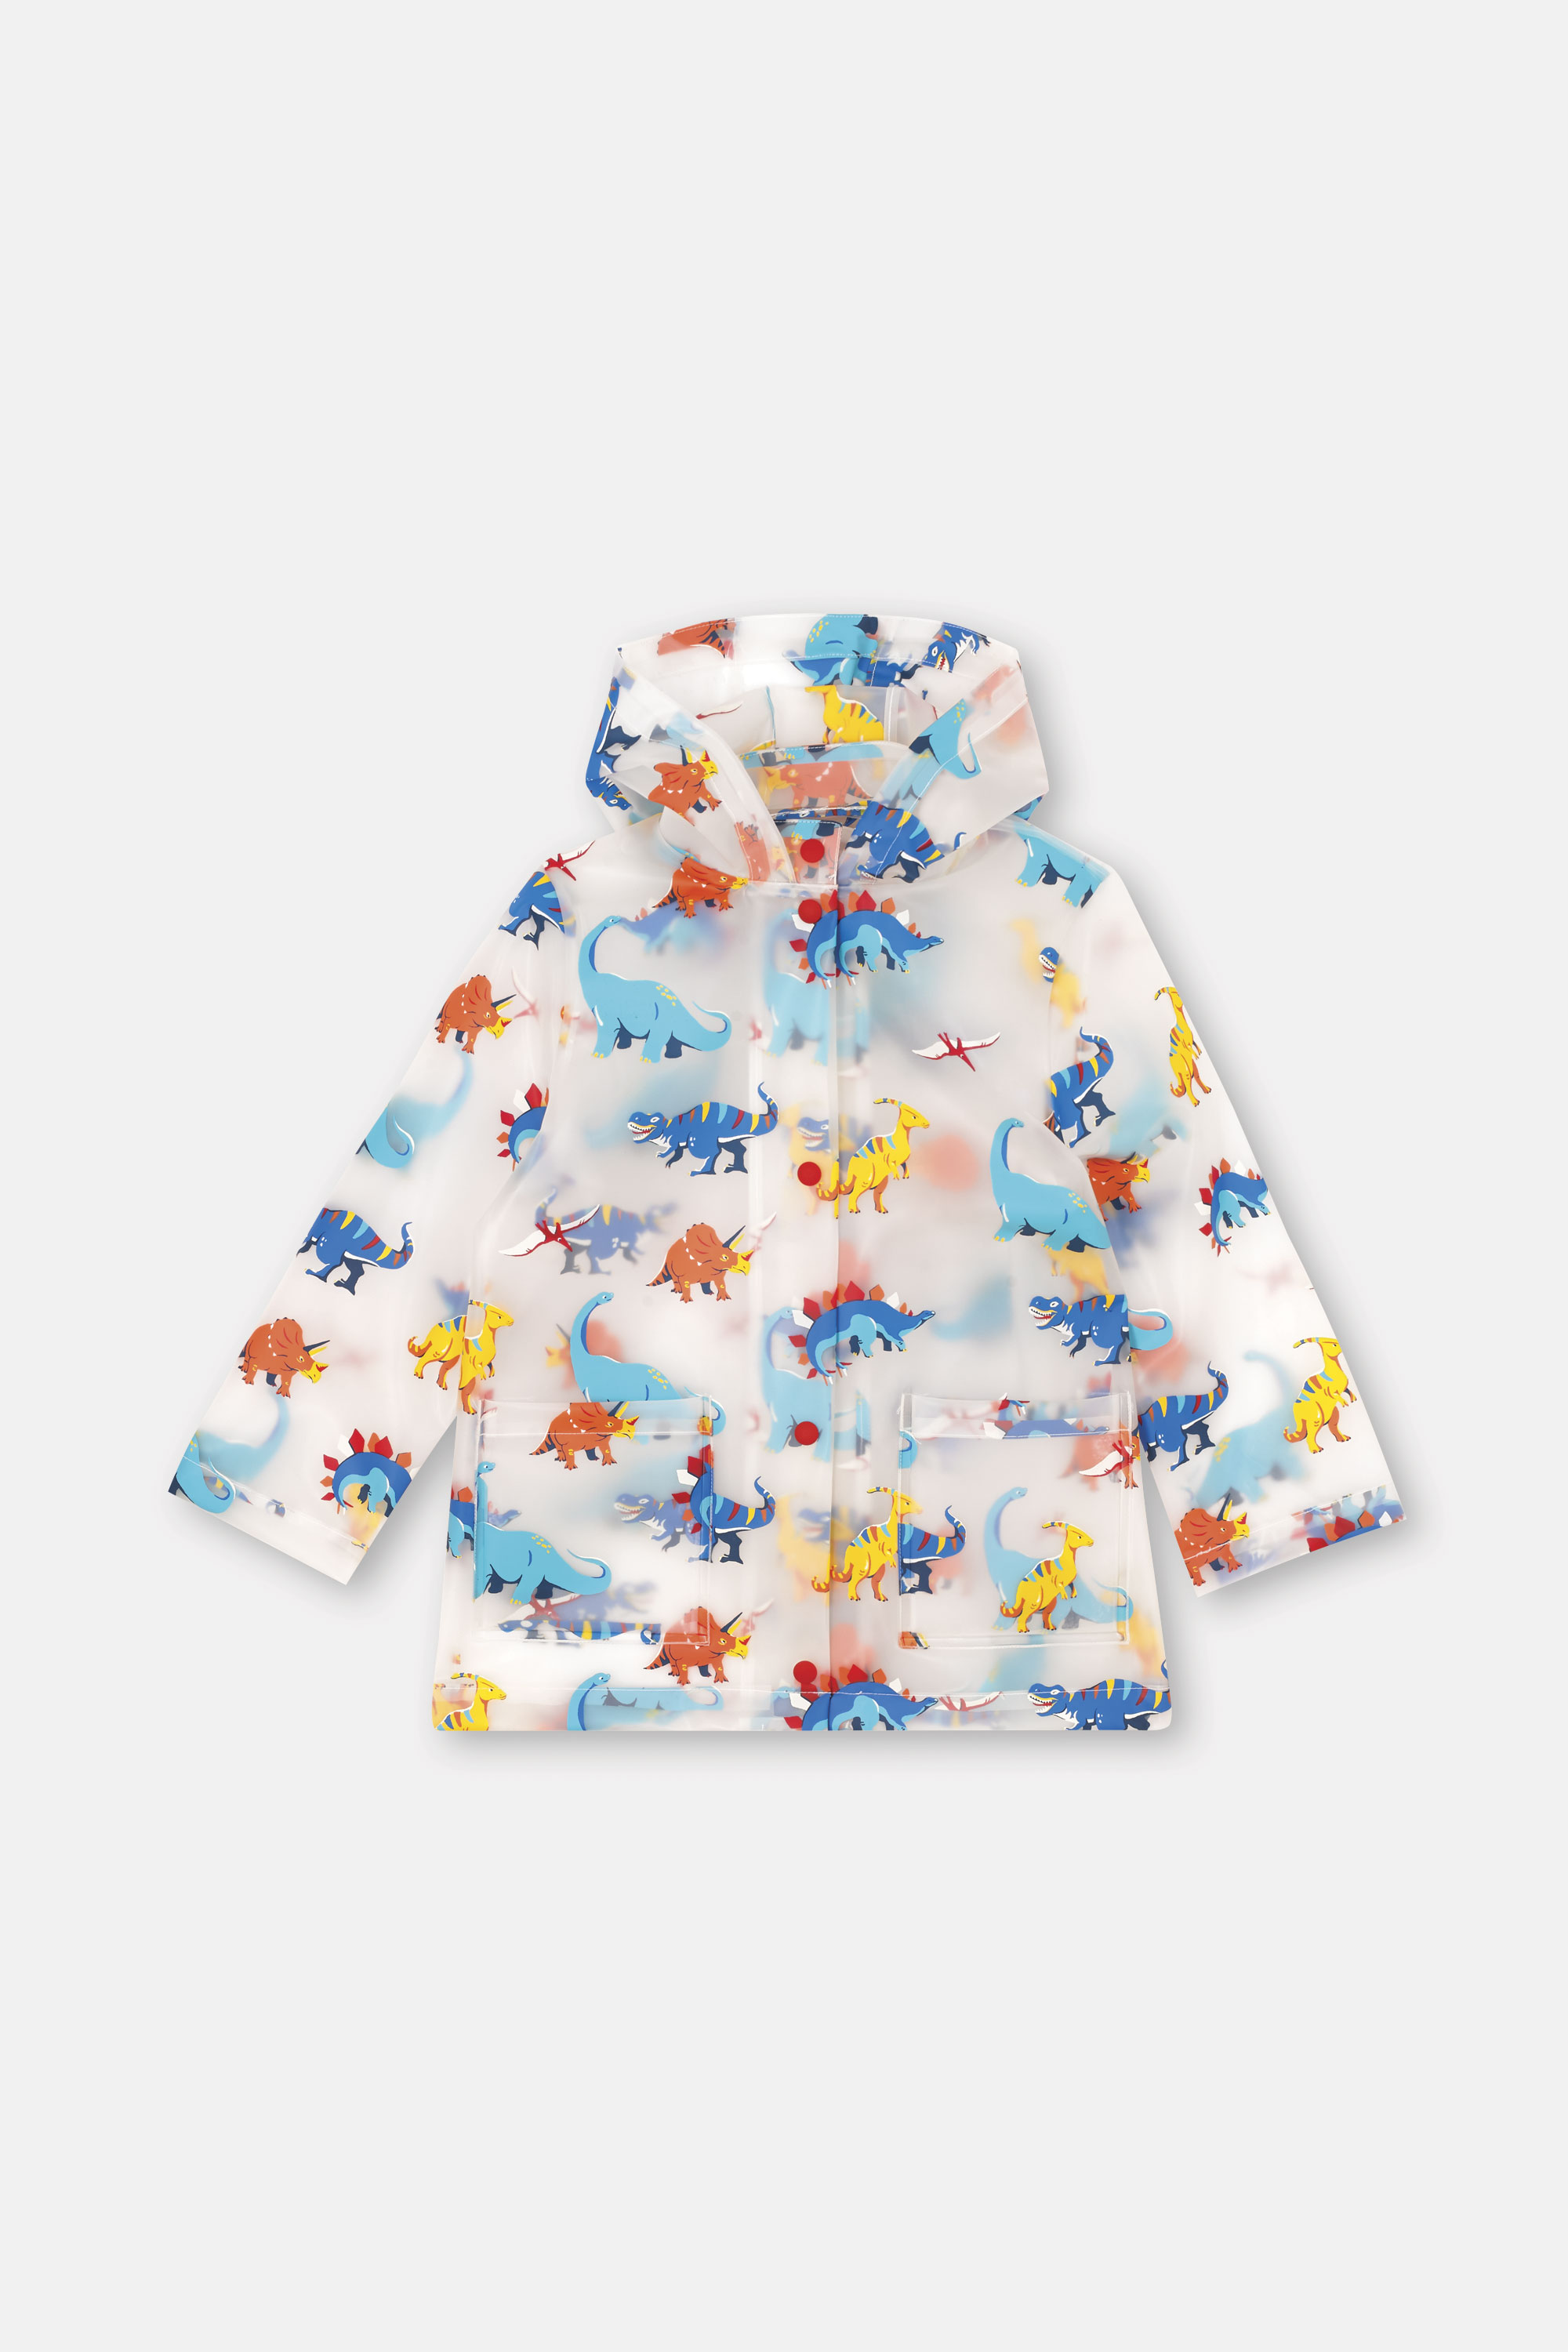 Cath Kidston Dinosaur Jungle Kids Clear Rain Mac Coat in Transparent, 5-6 yr